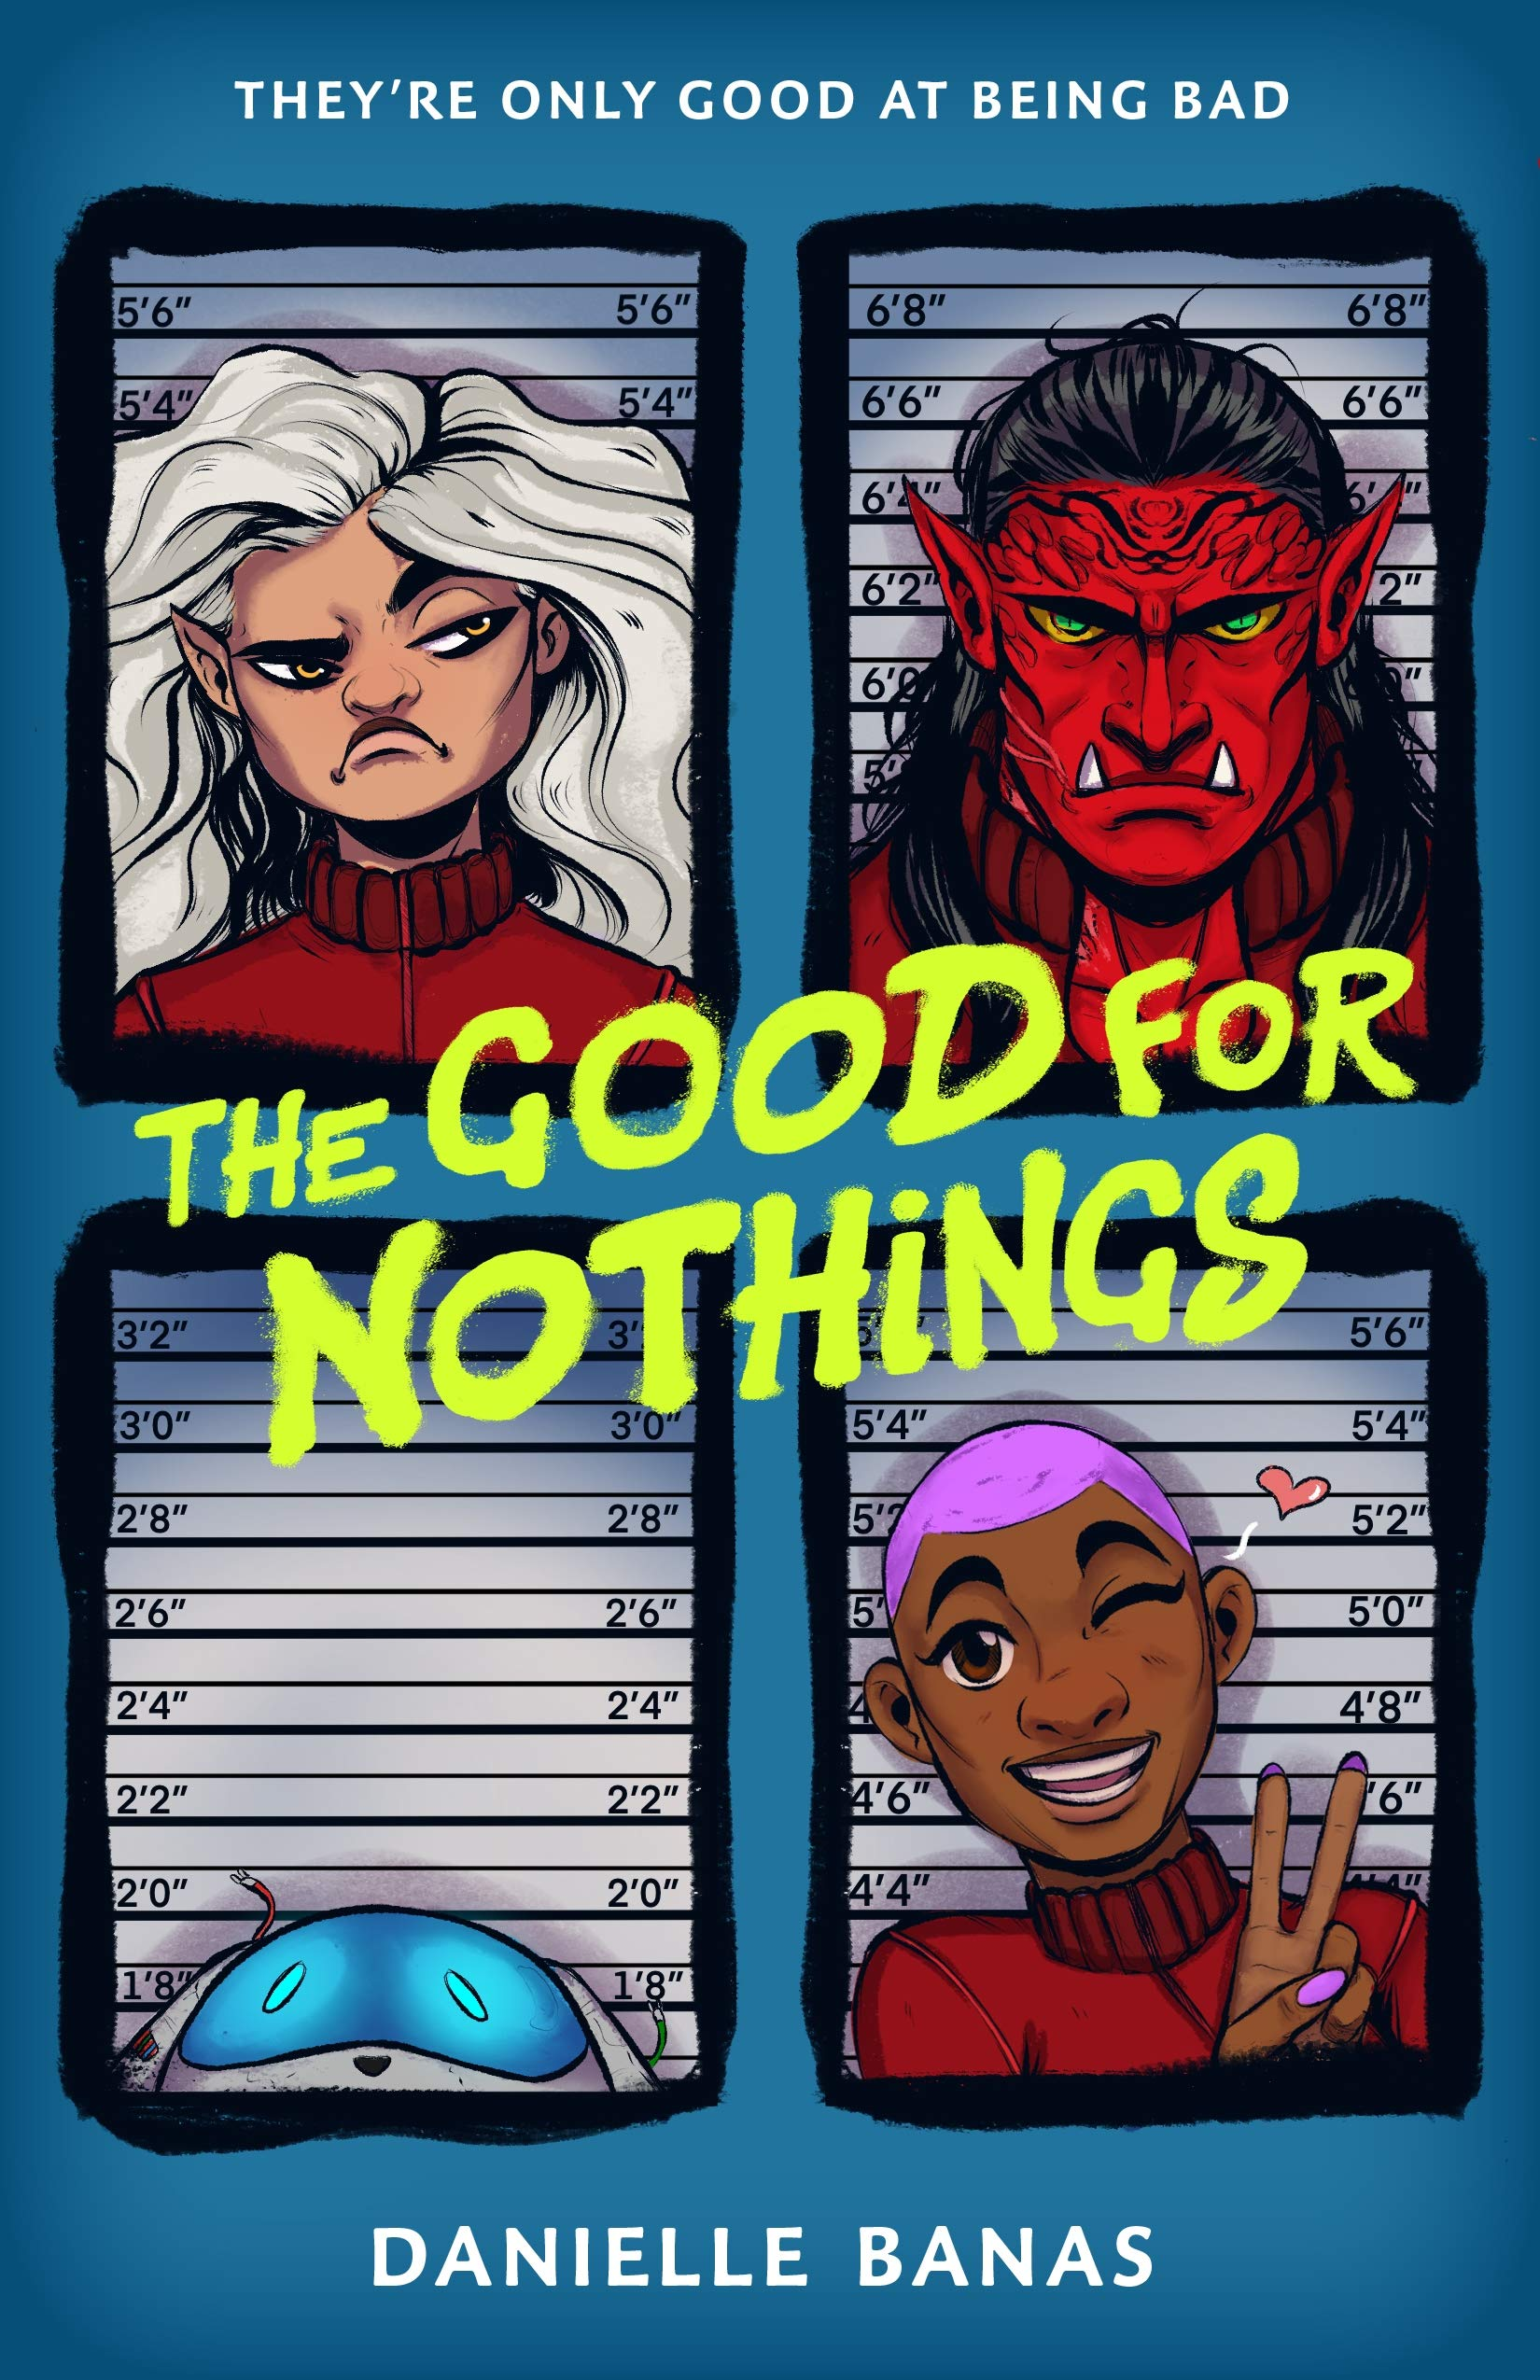 Amazon.com: The Good for Nothings (9781250311252): Banas, Danielle ...